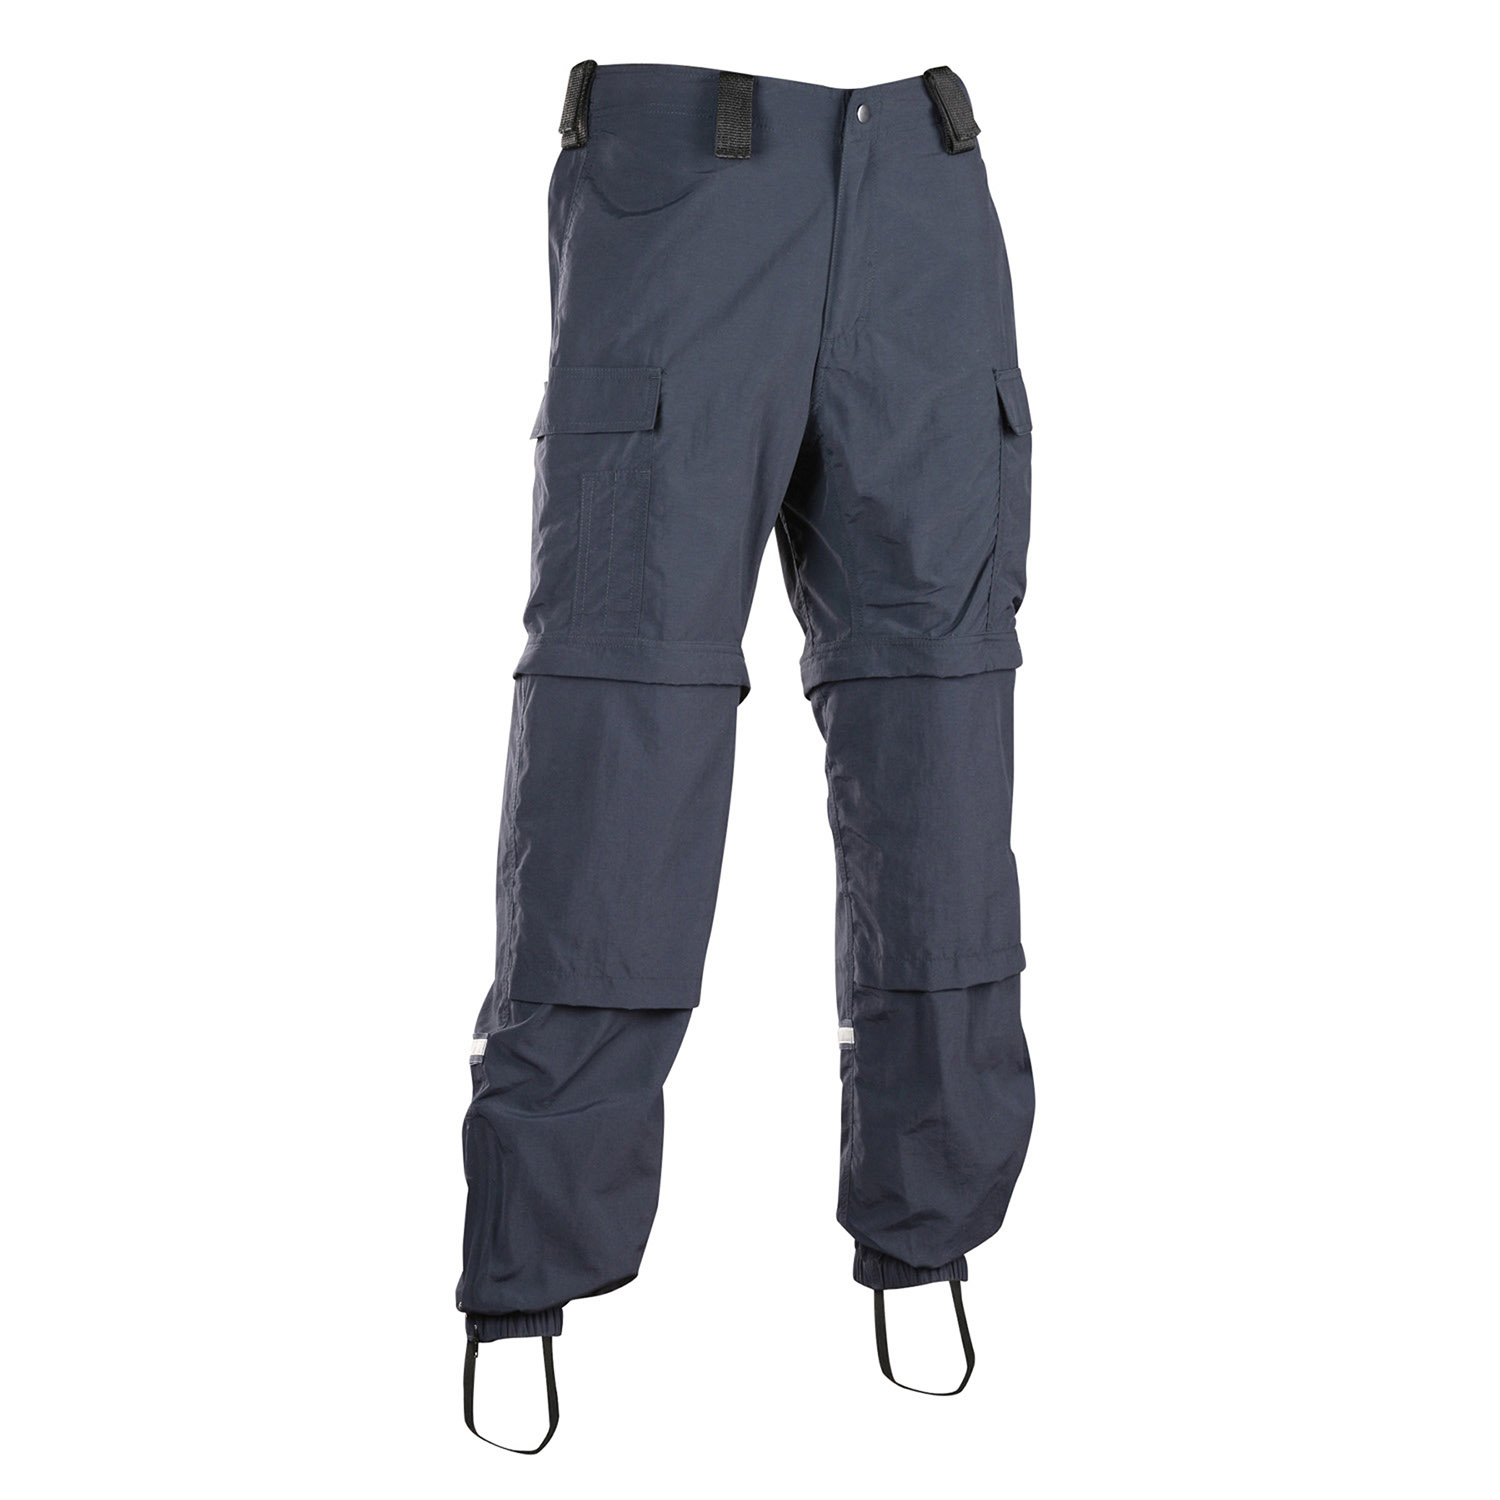 Mocean Supplex Zip Off Bike Pants